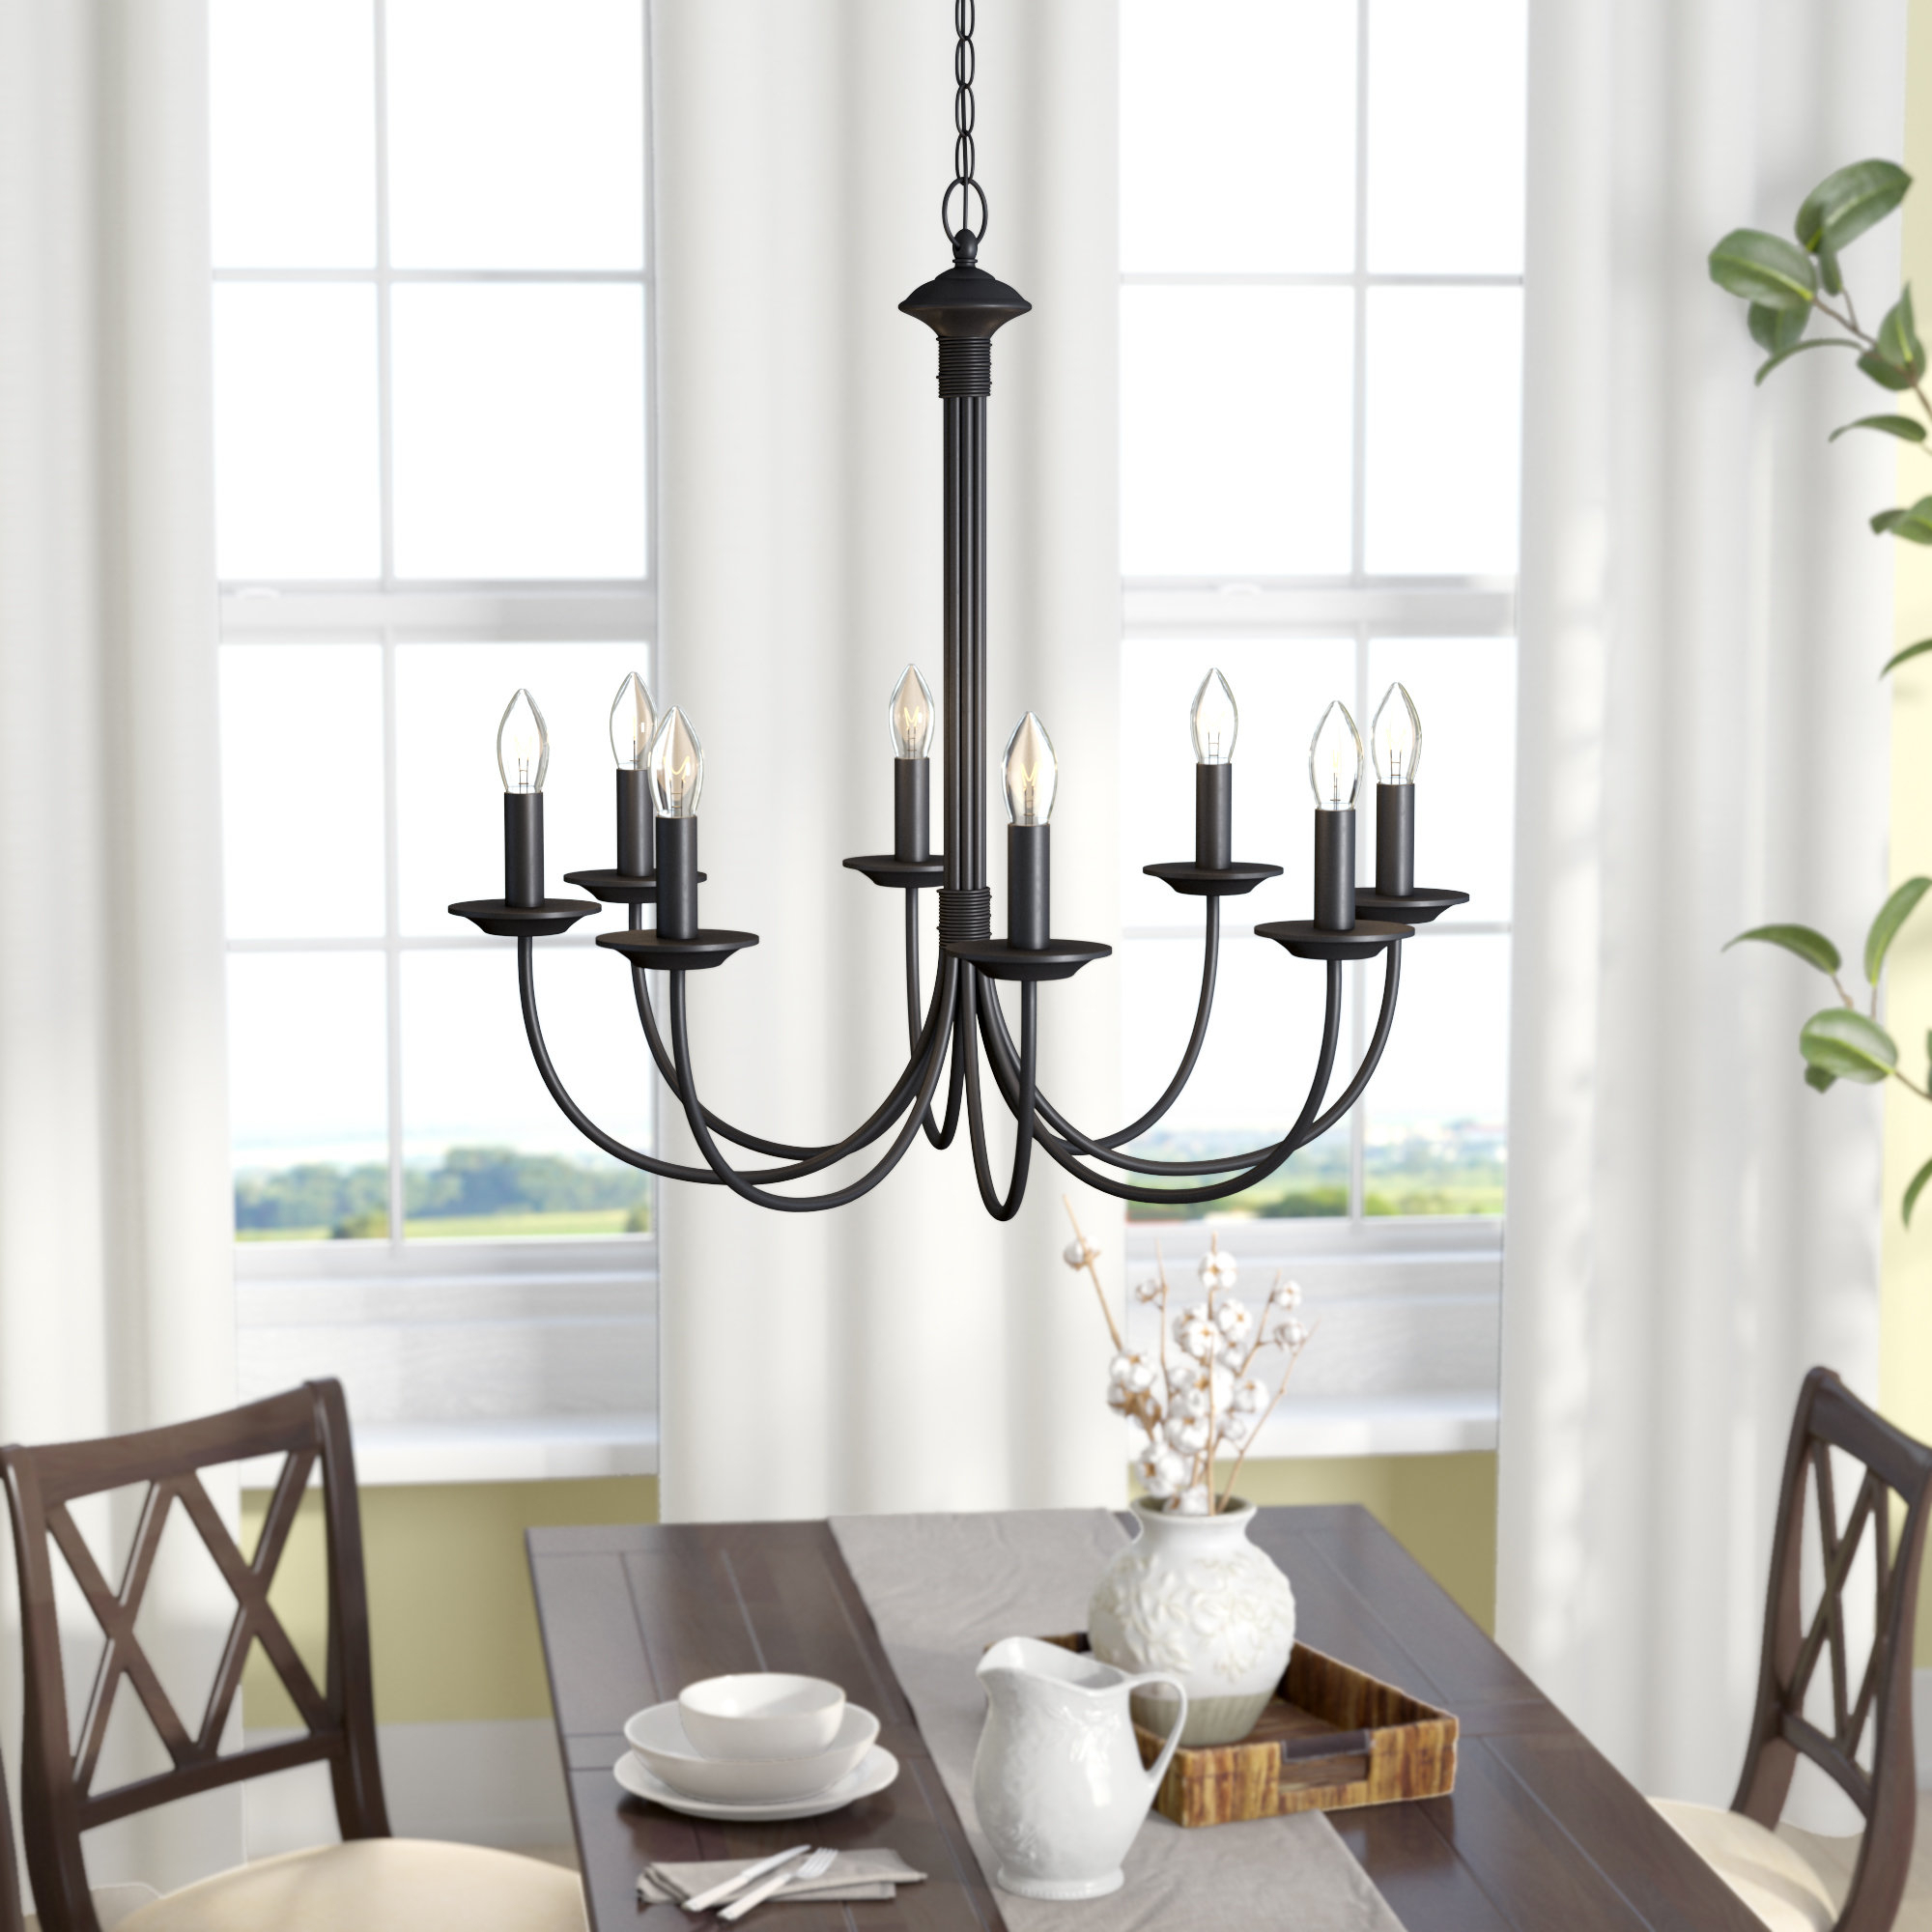 2019 Shaylee 8 Light Candle Style Chandeliers Intended For Shaylee 8 Light Candle Style Chandelier (View 4 of 25)